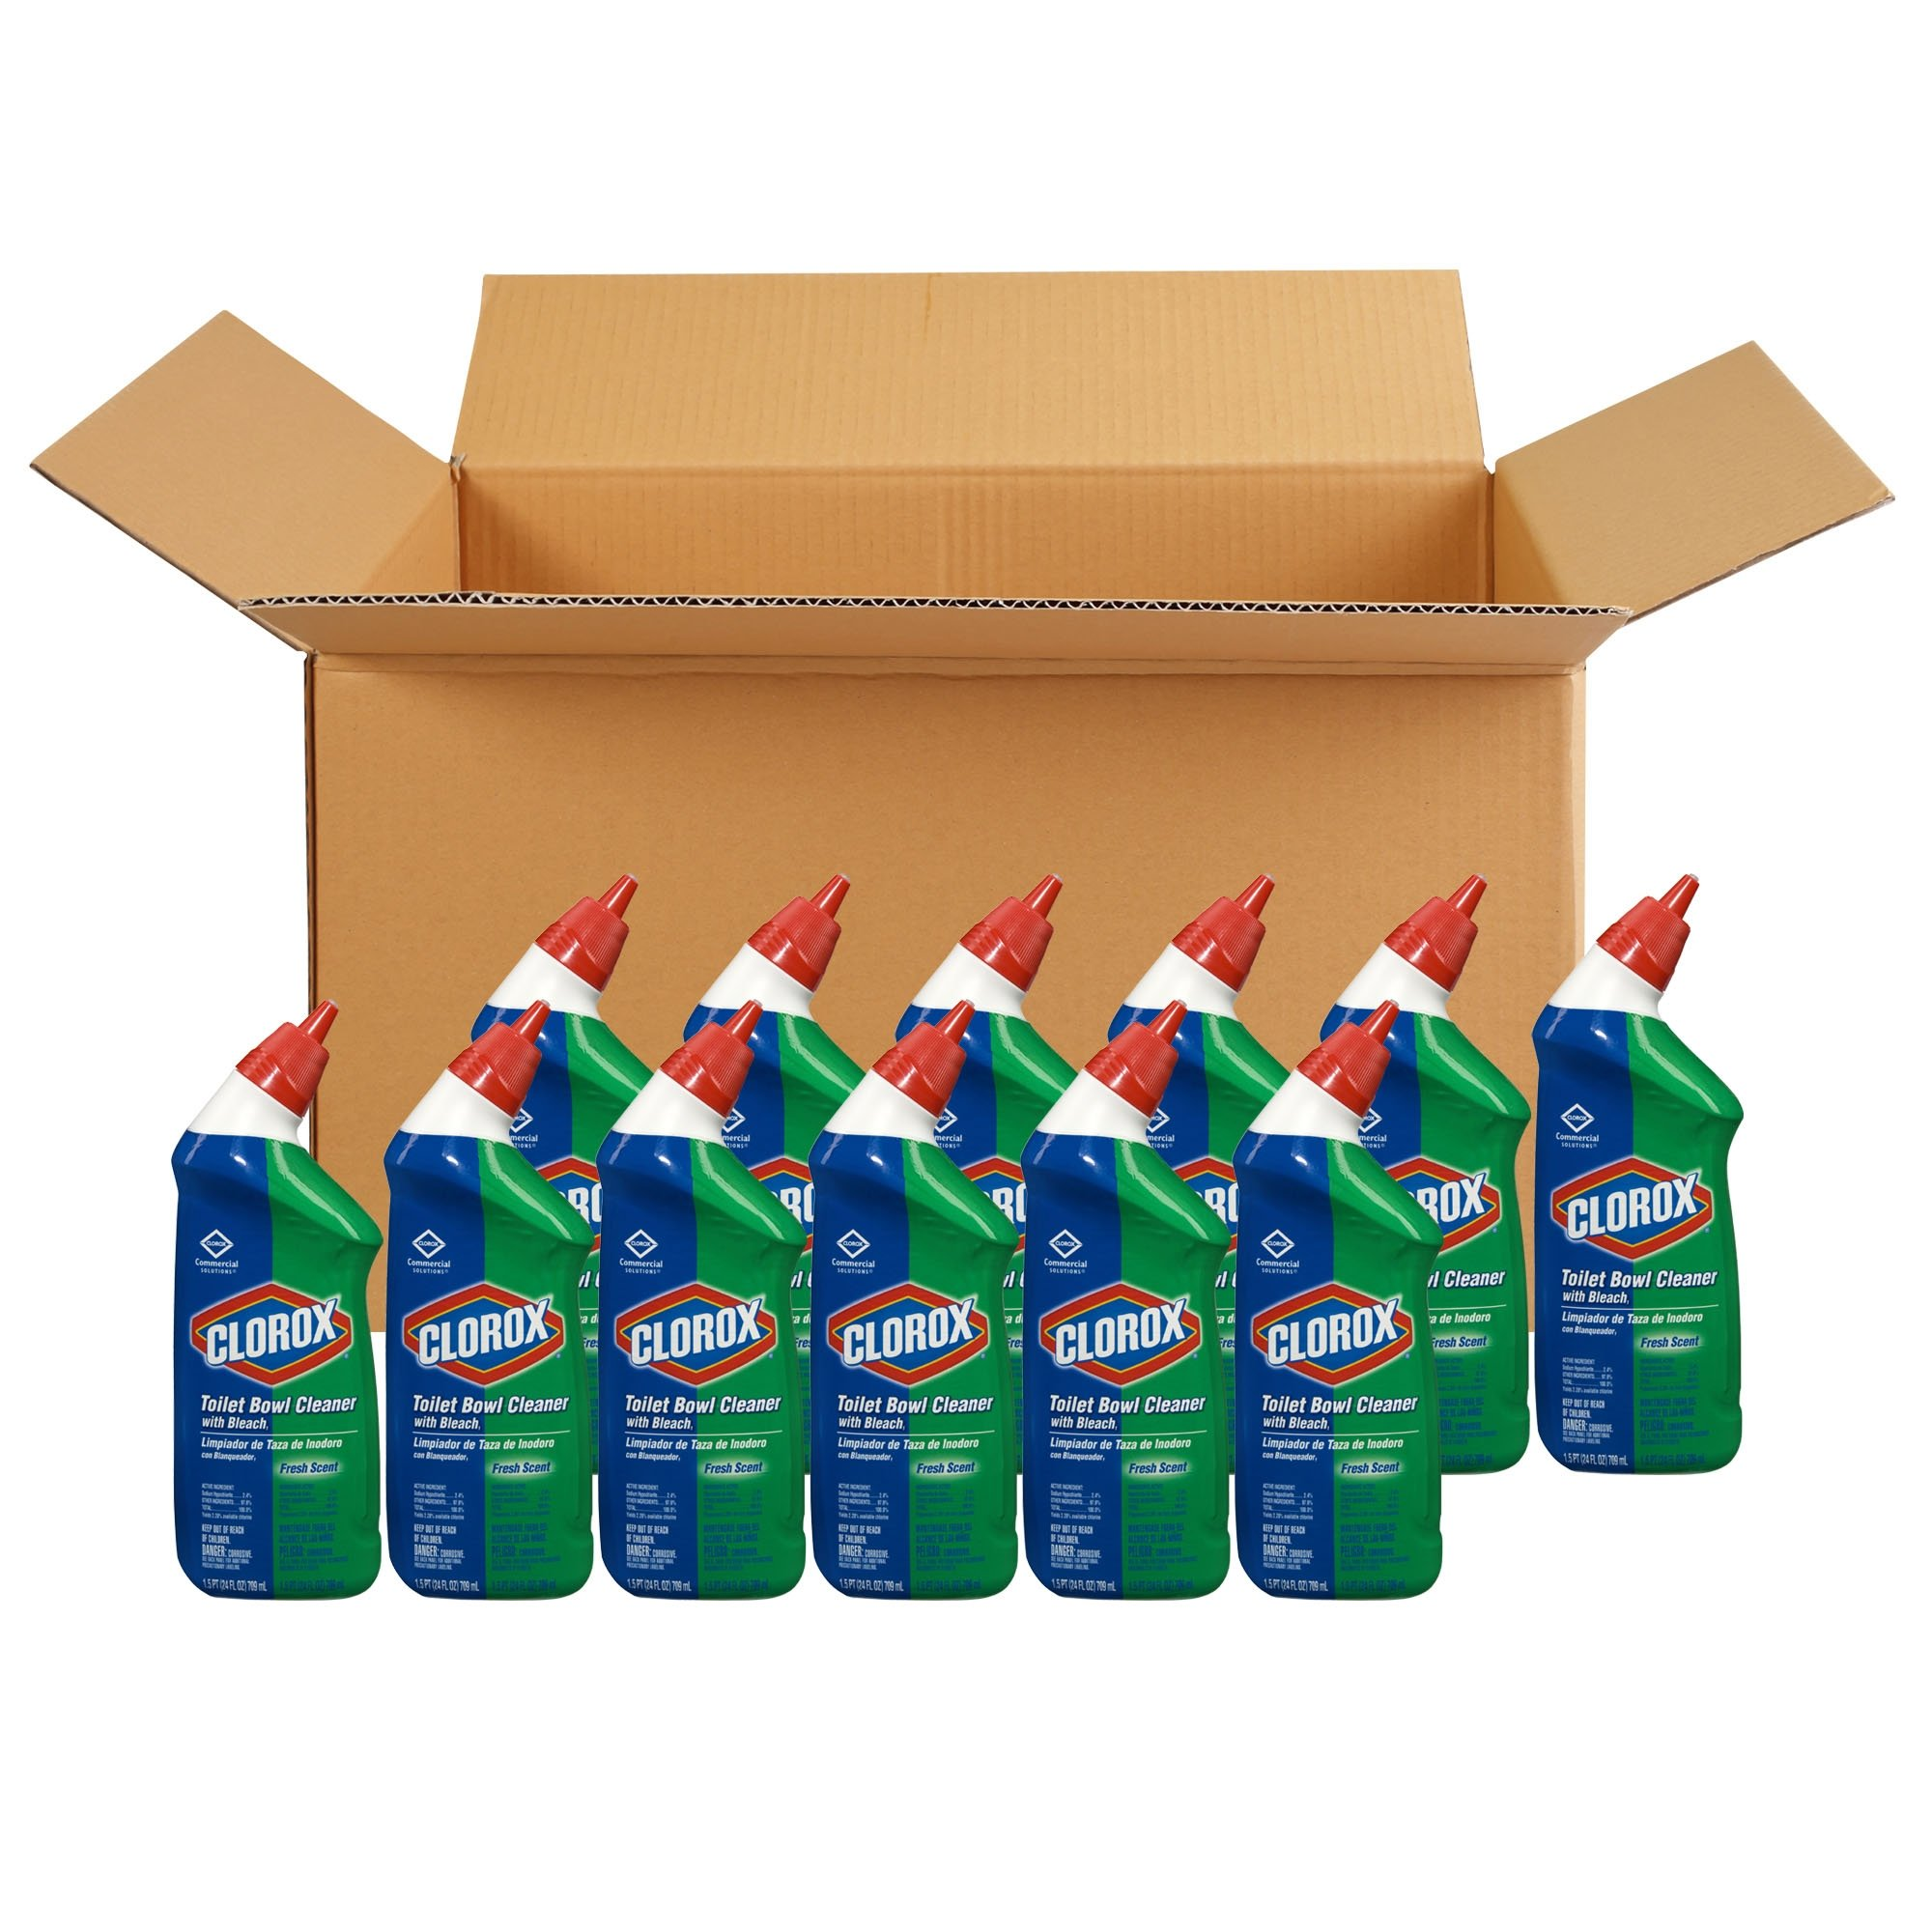 Clorox Toilet Bowl Cleaner with Bleach, Fresh Scent - 24 Ounces, 12 Bottles/Case (00031) by Clorox